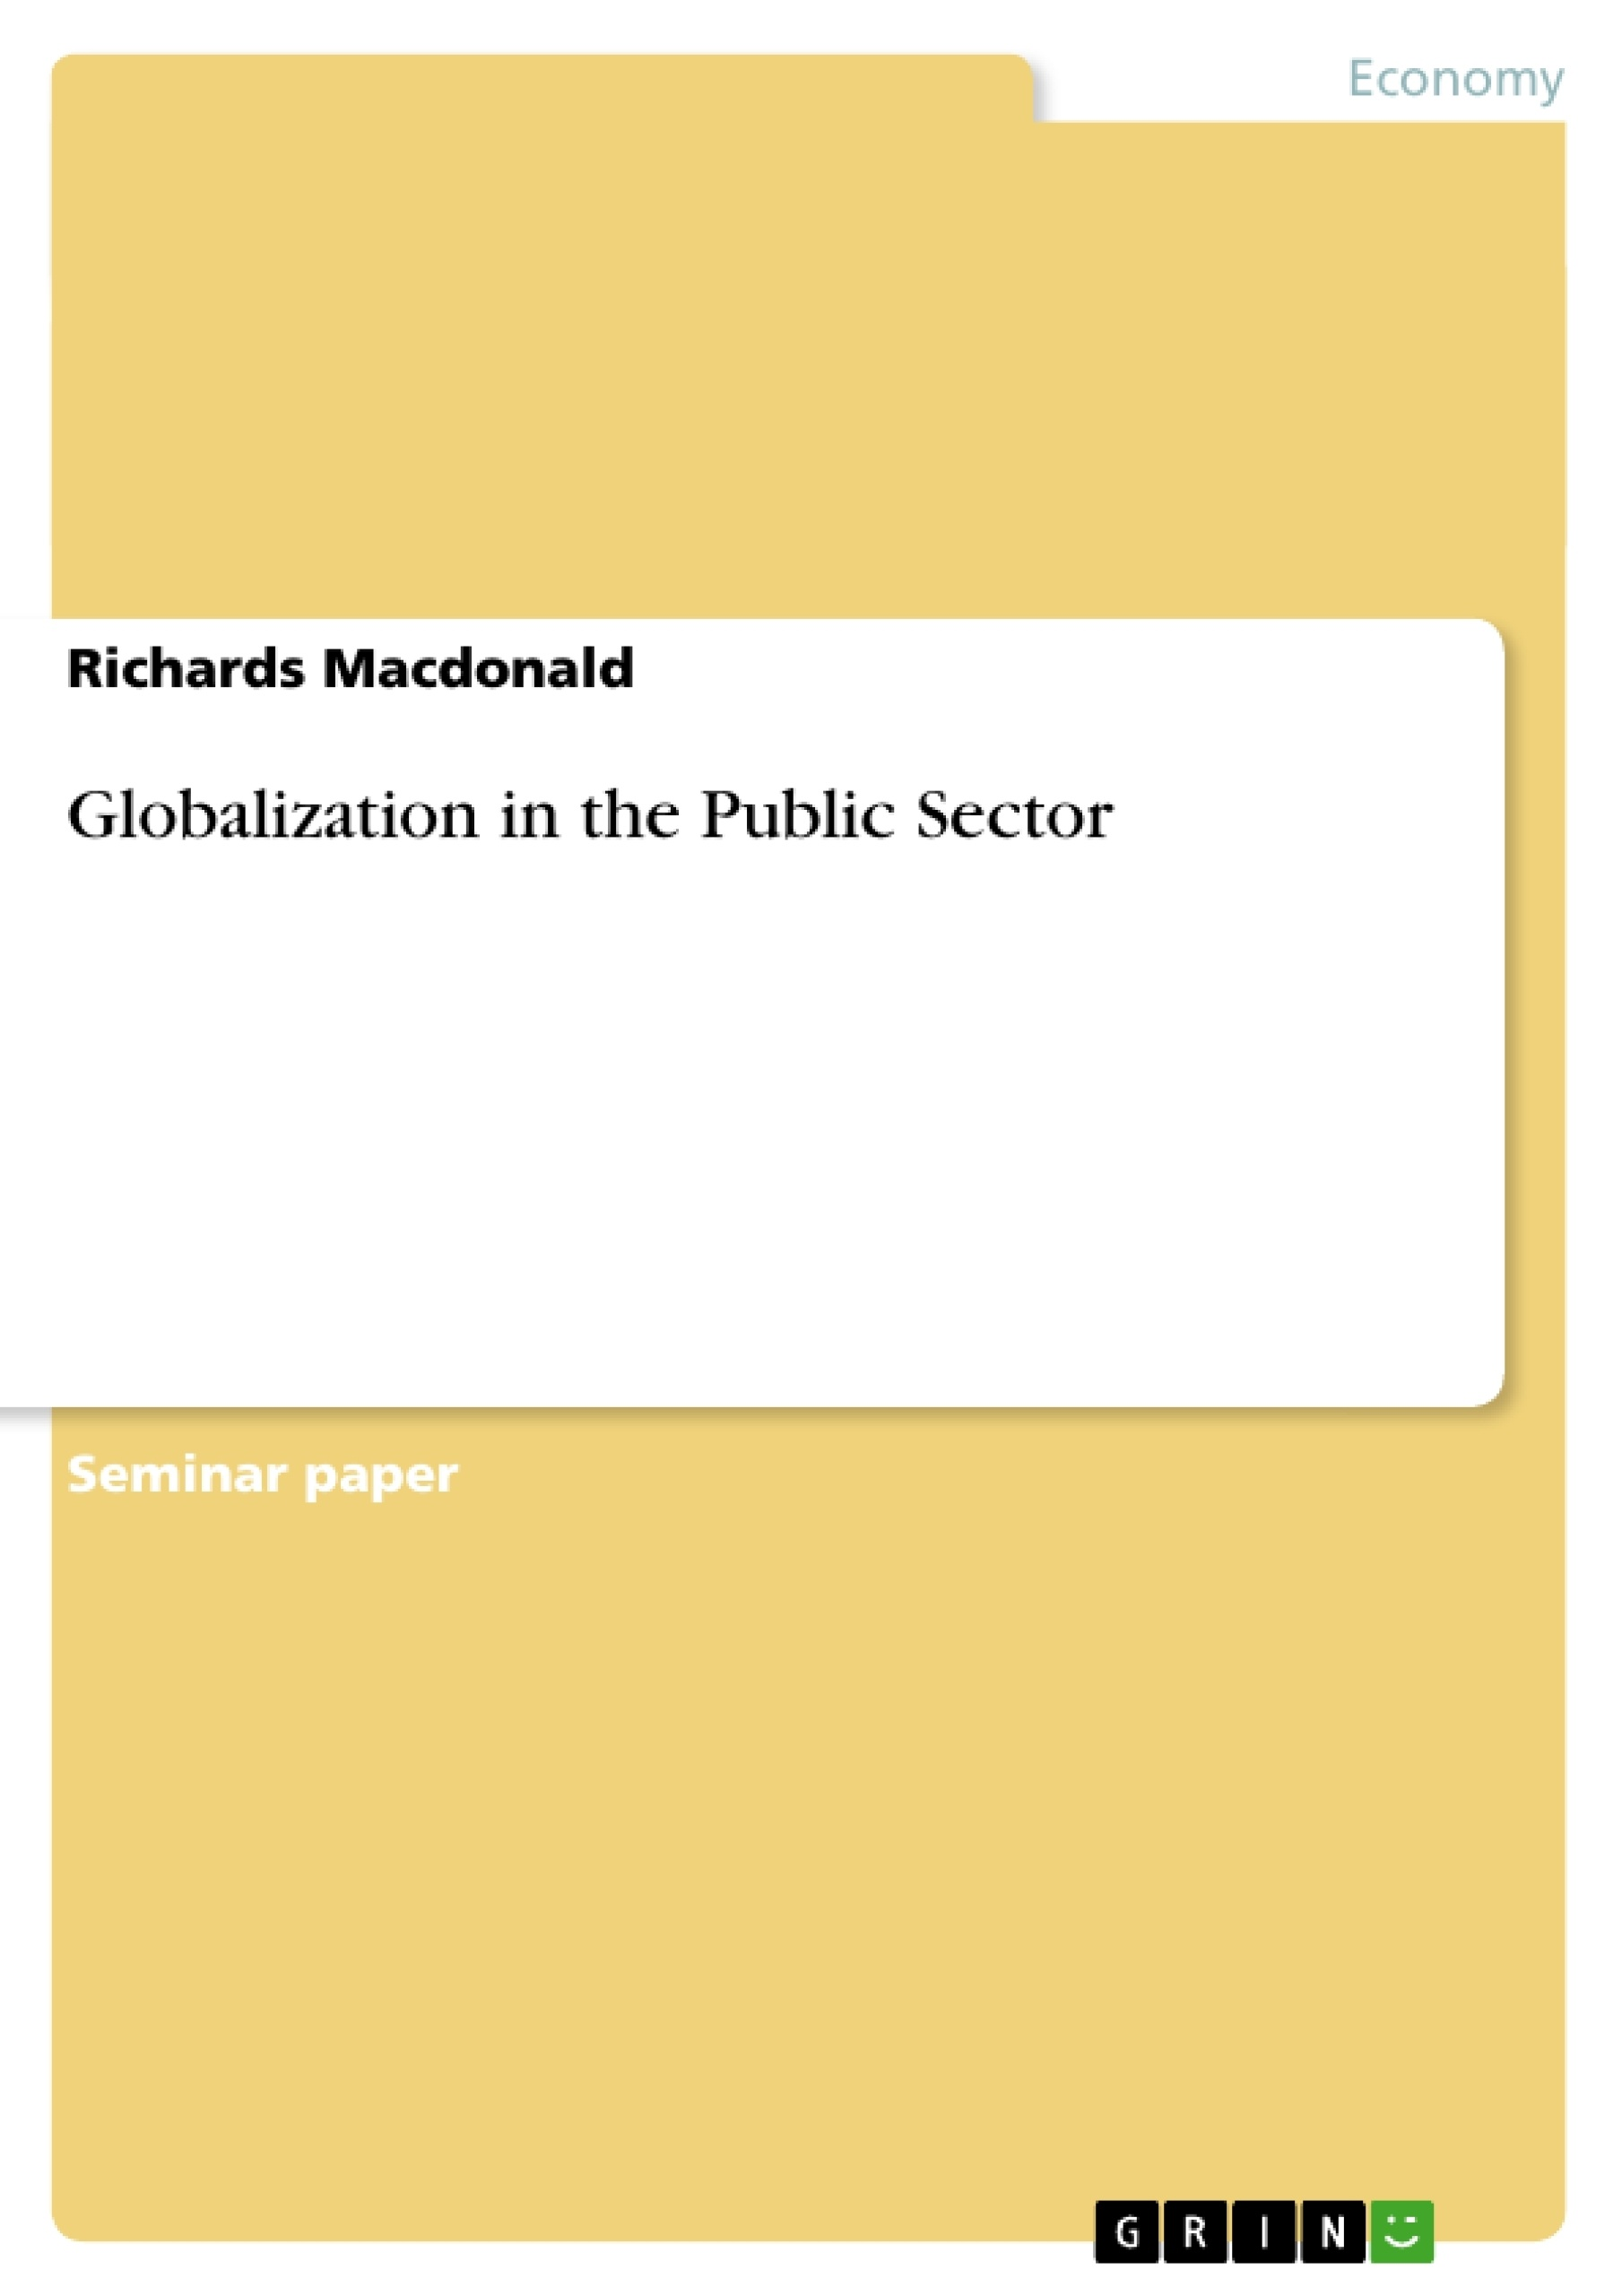 Title: Globalization in the Public Sector